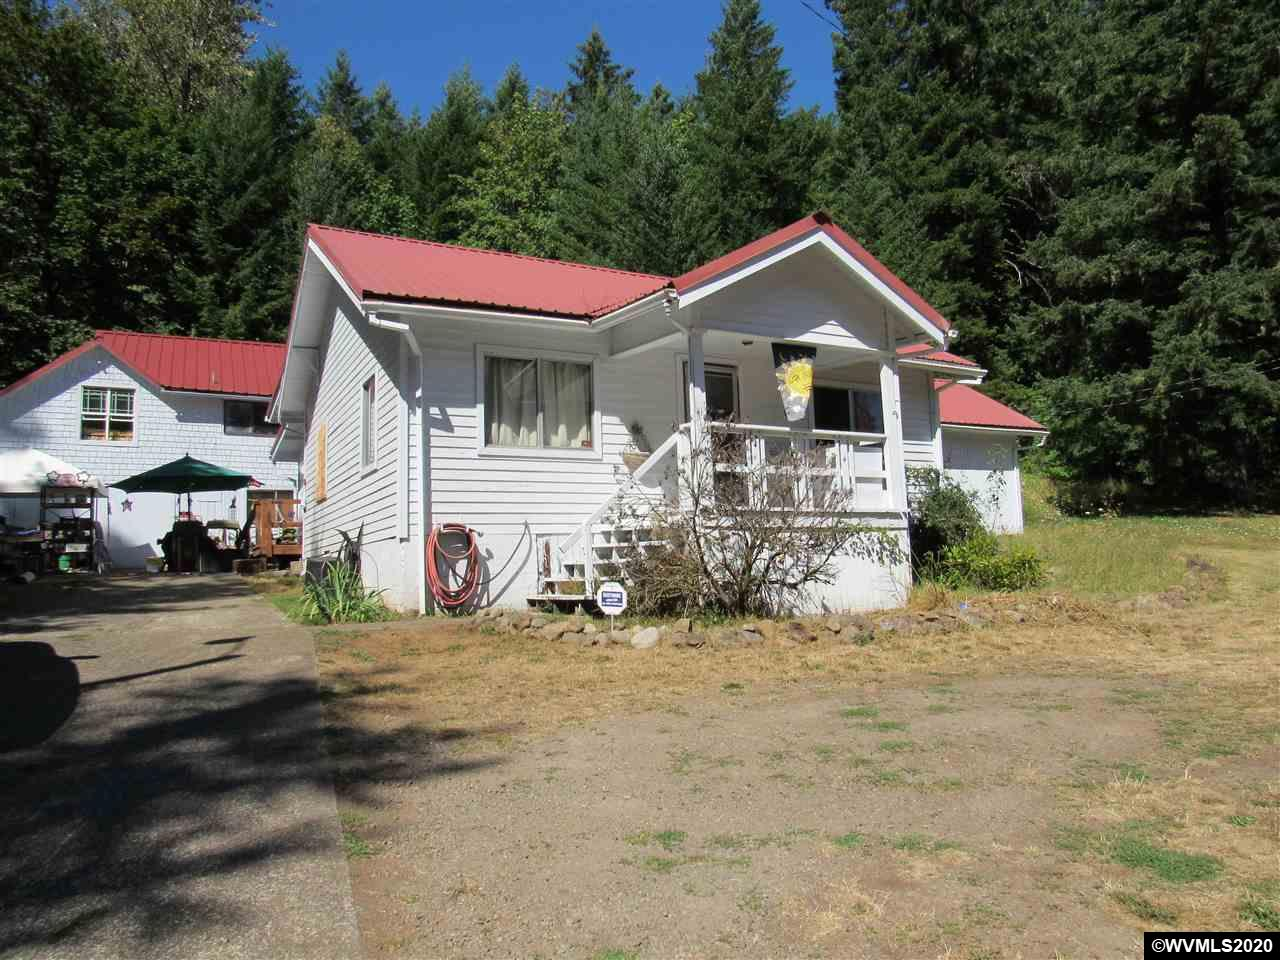 30819 North Santiam Hwy, Gates, Oregon 97346, 5 Bedrooms Bedrooms, ,3 BathroomsBathrooms,Residence,For sale,30819 North Santiam Hwy,768082